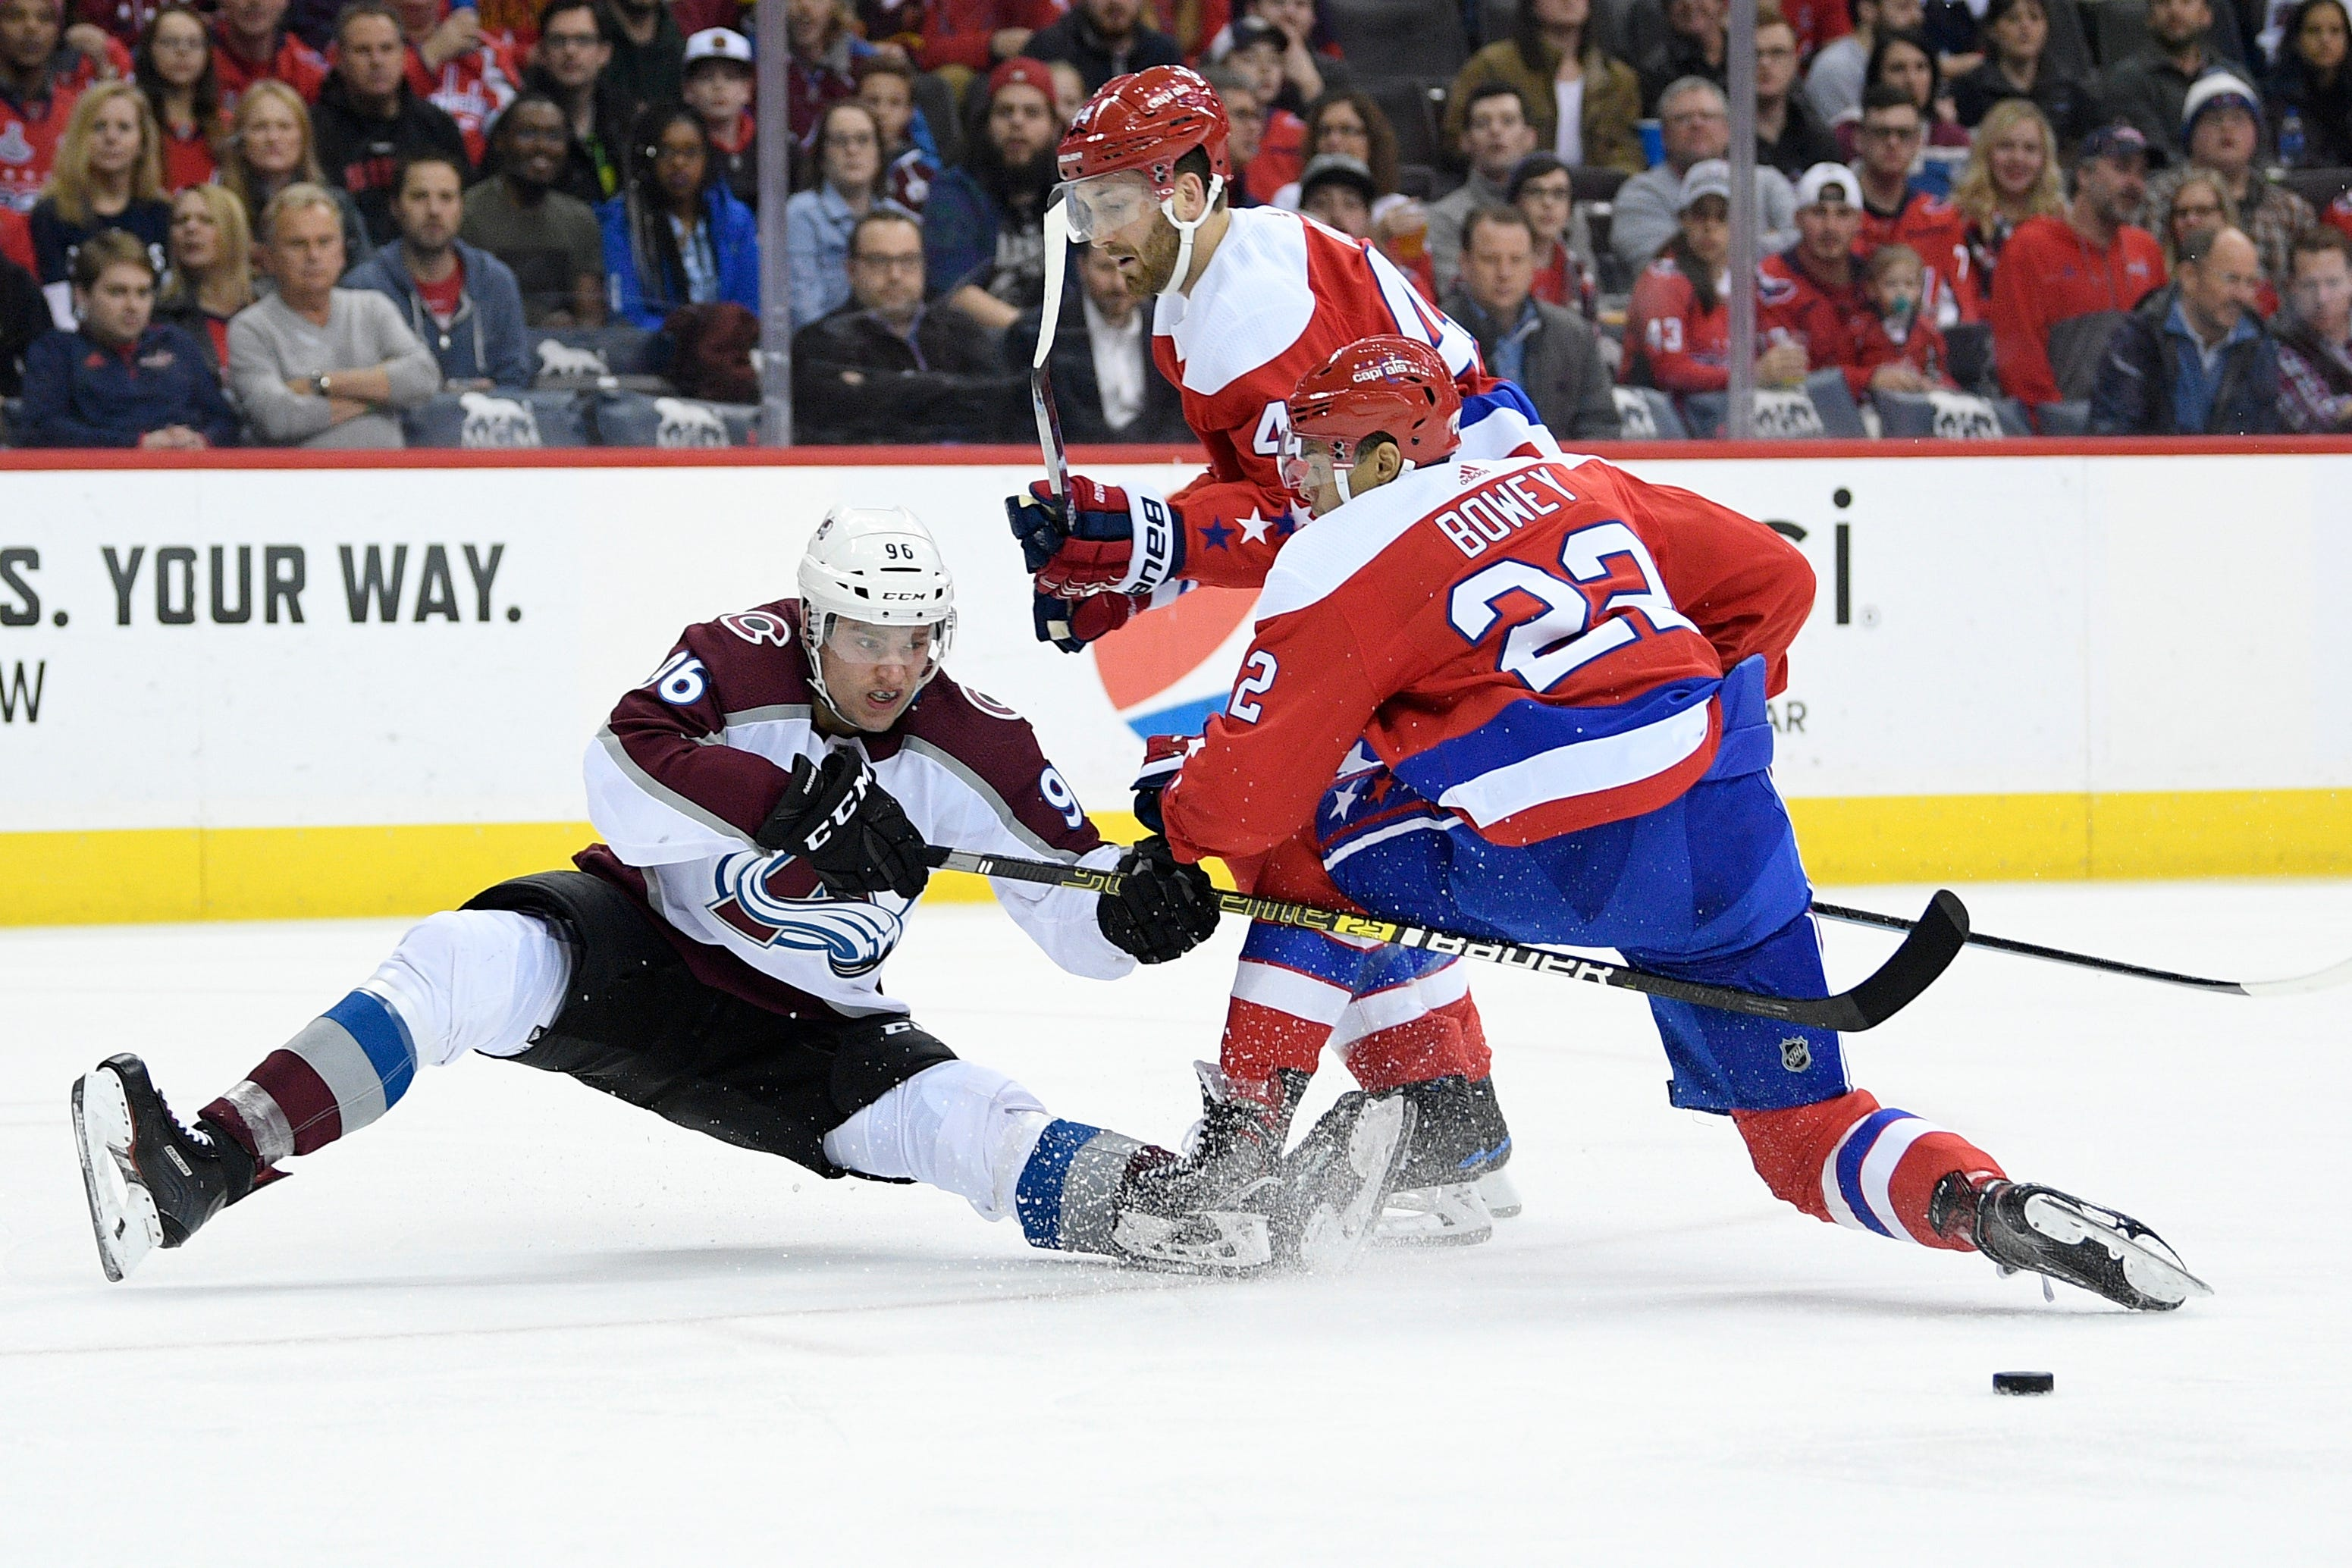 Caps beat Avs in OT, Colorado loses 5th consecutive game